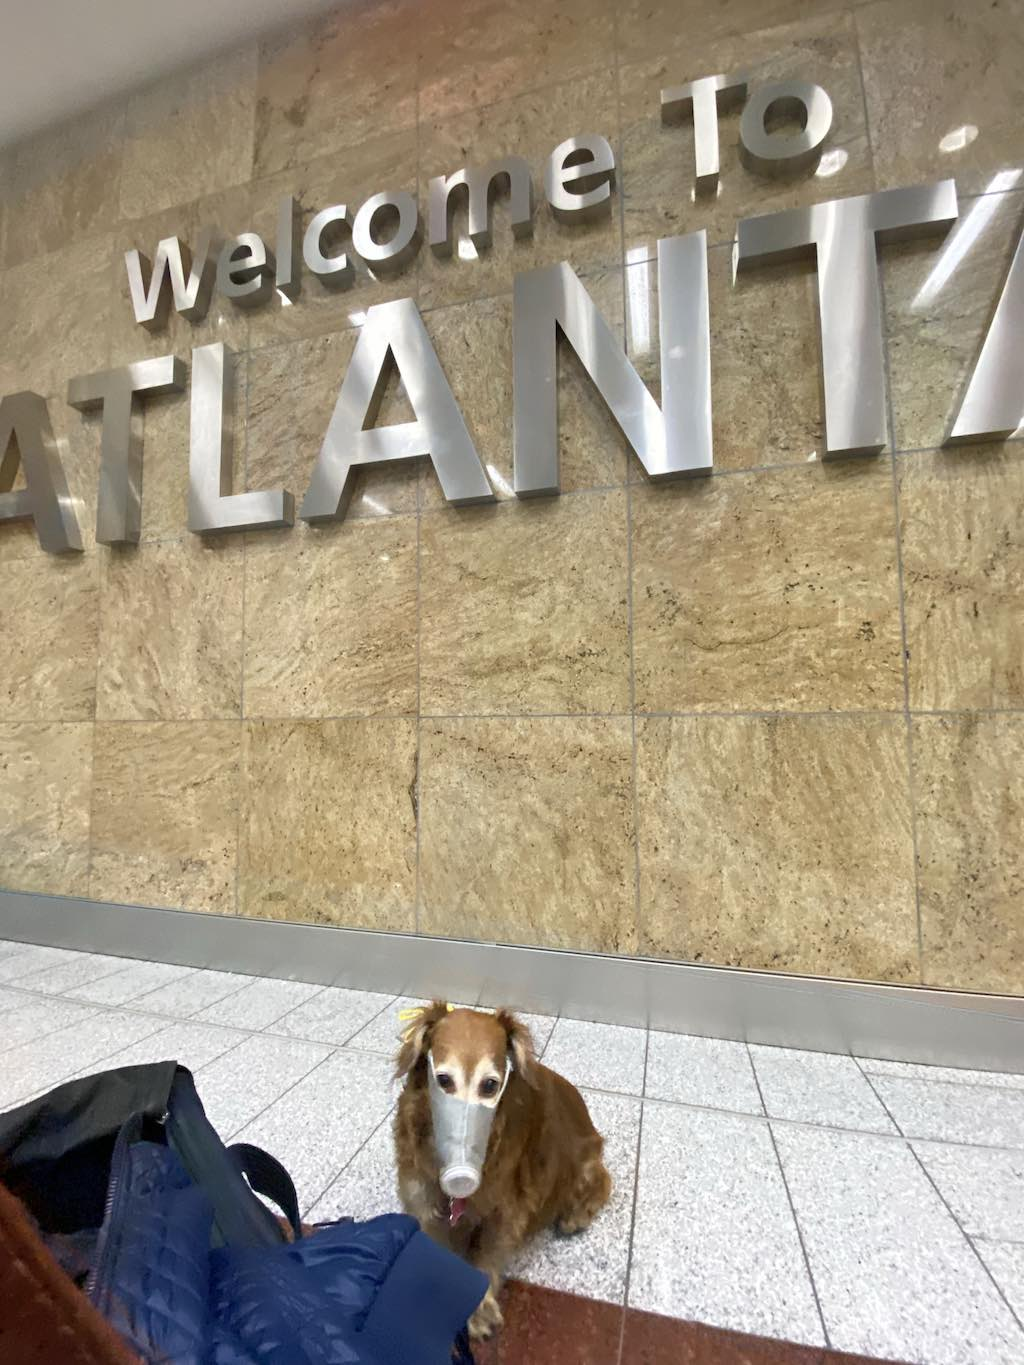 My dog after flying Delta by the welcome to Atlanta sign.